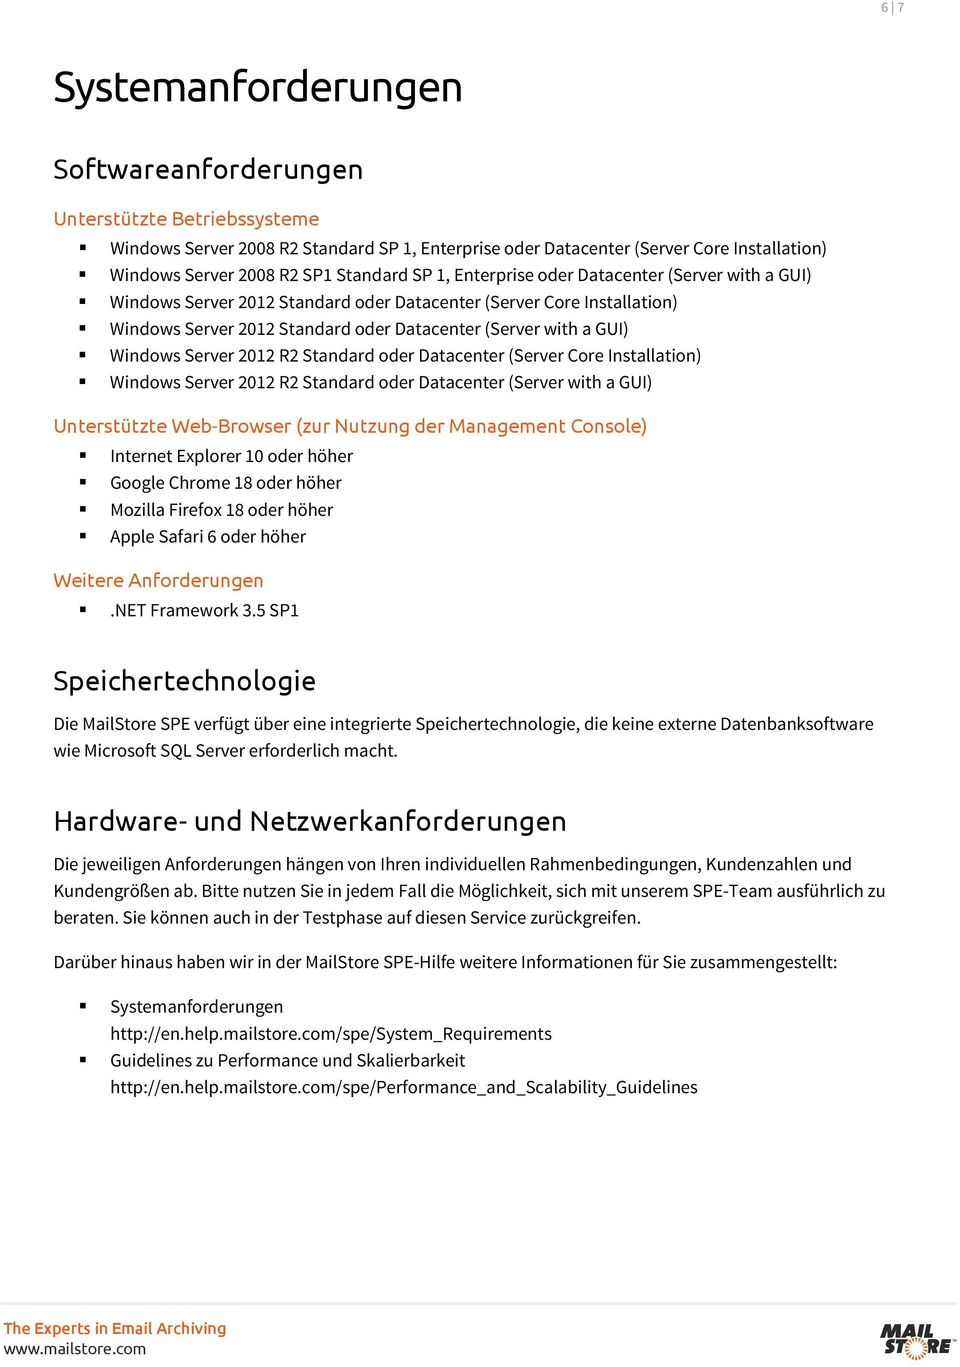 Windows Server 2012 R2 Standard oder Datacenter (Server Core Installation) Windows Server 2012 R2 Standard oder Datacenter (Server with a GUI) Unterstützte Web-Browser (zur Nutzung der Management